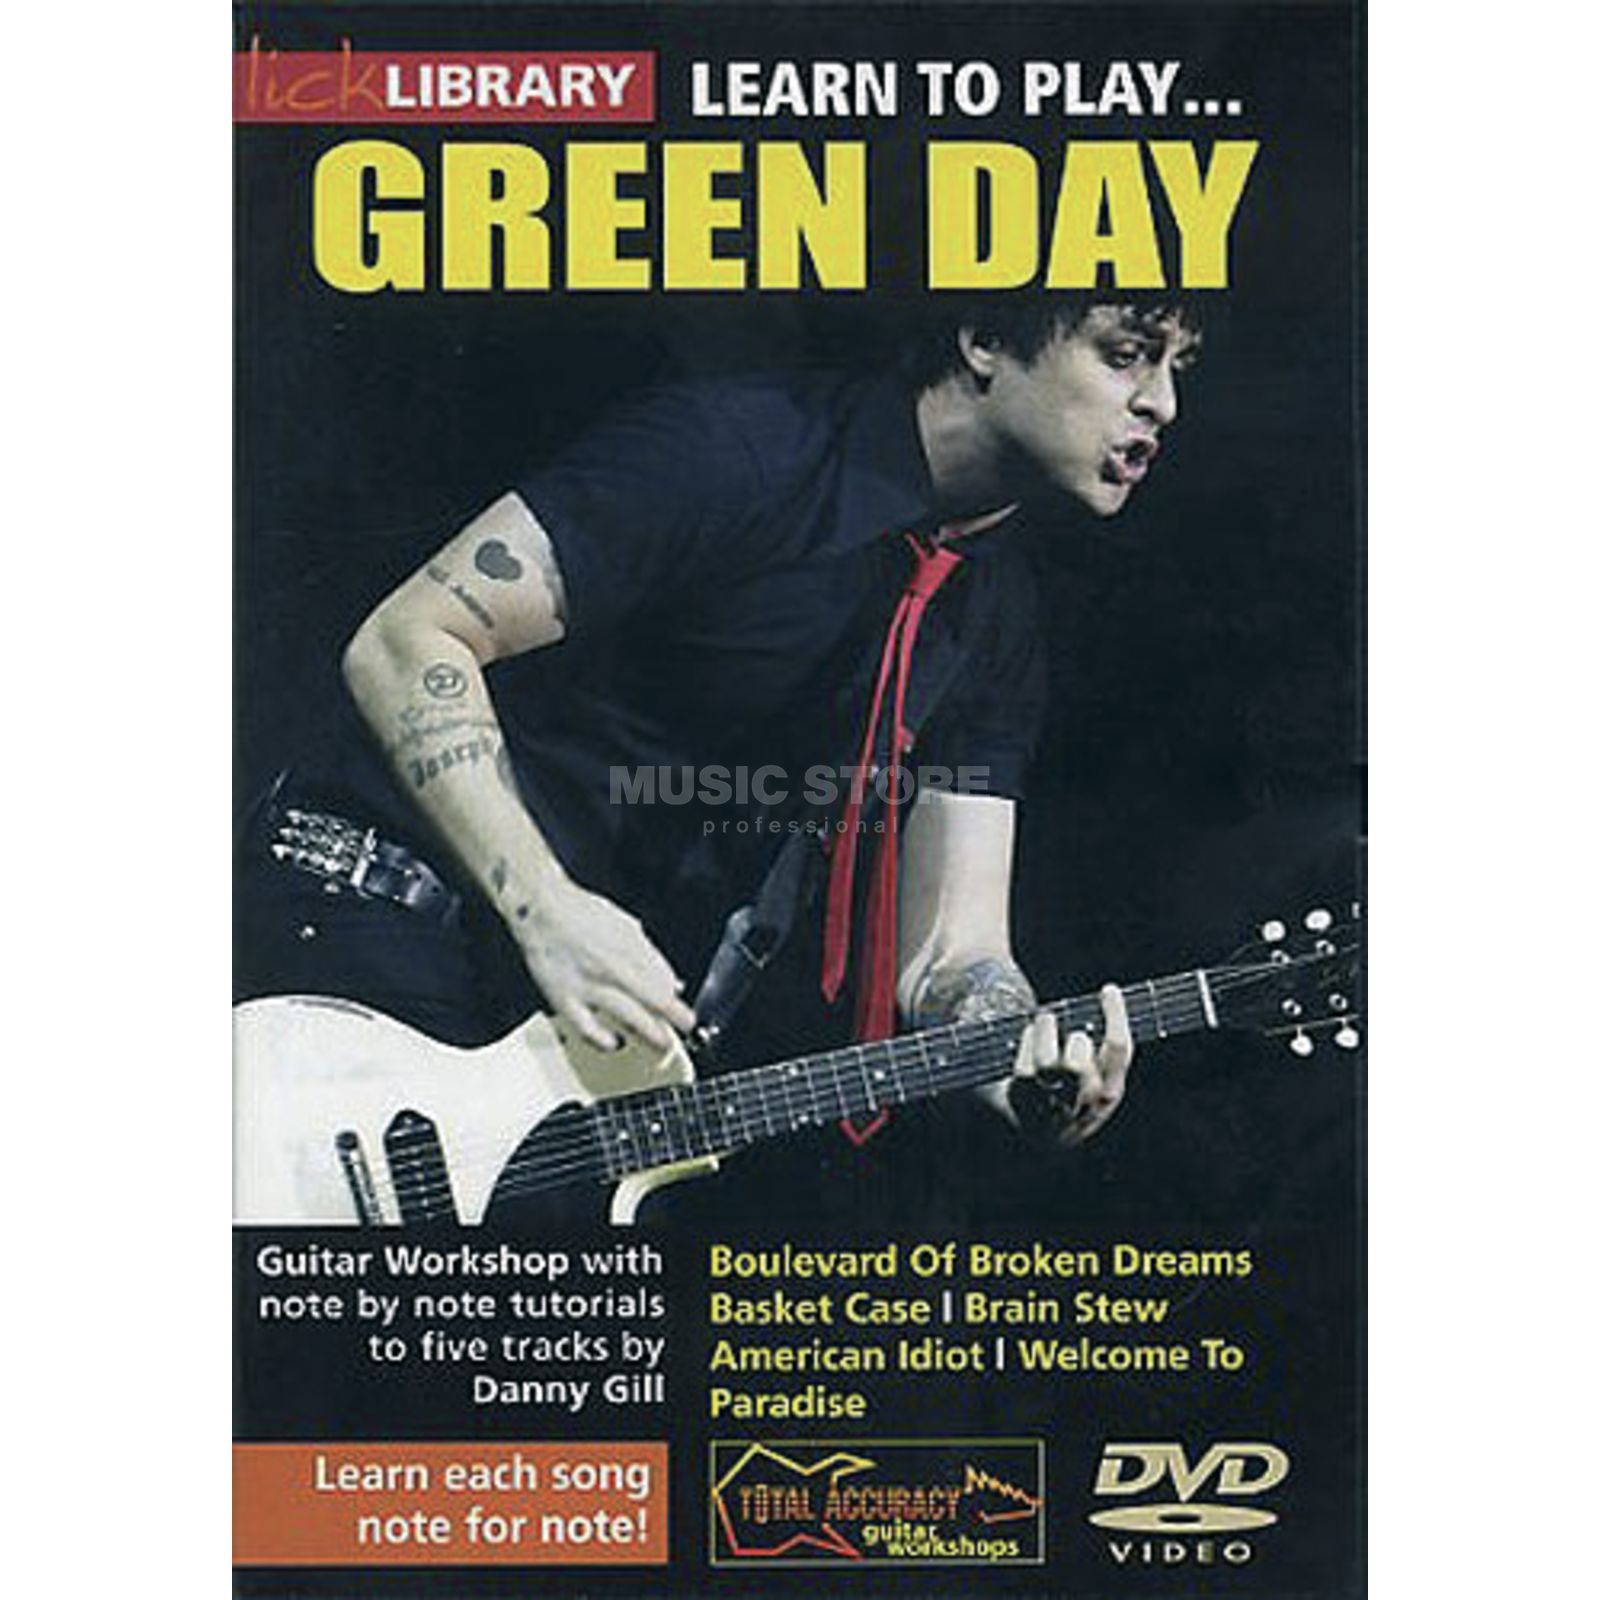 Roadrock International Lick Library: Learn To Play Green Day Produktbild